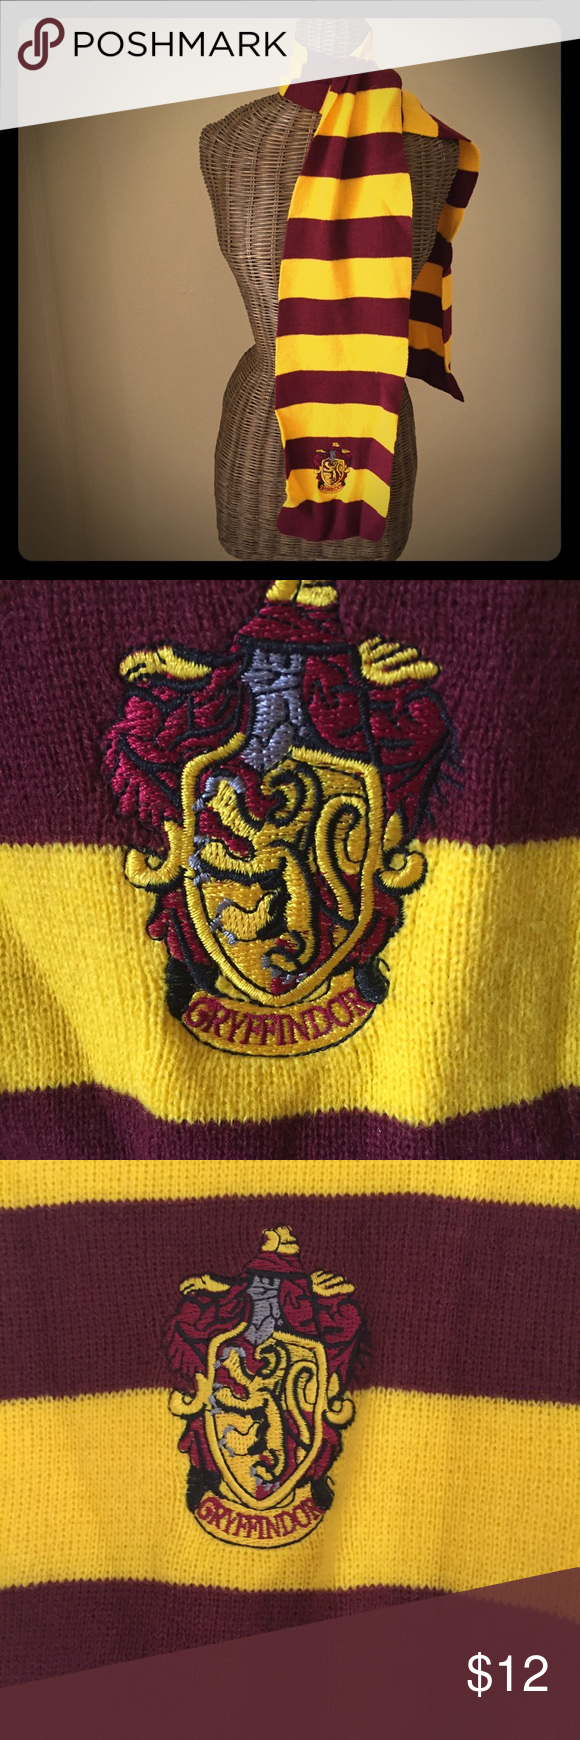 Harry Potter Gryffindor scarf Harry Potter Gryffindor scarf, excellent condition. Perfect for the Harry Potter fan! Accessories